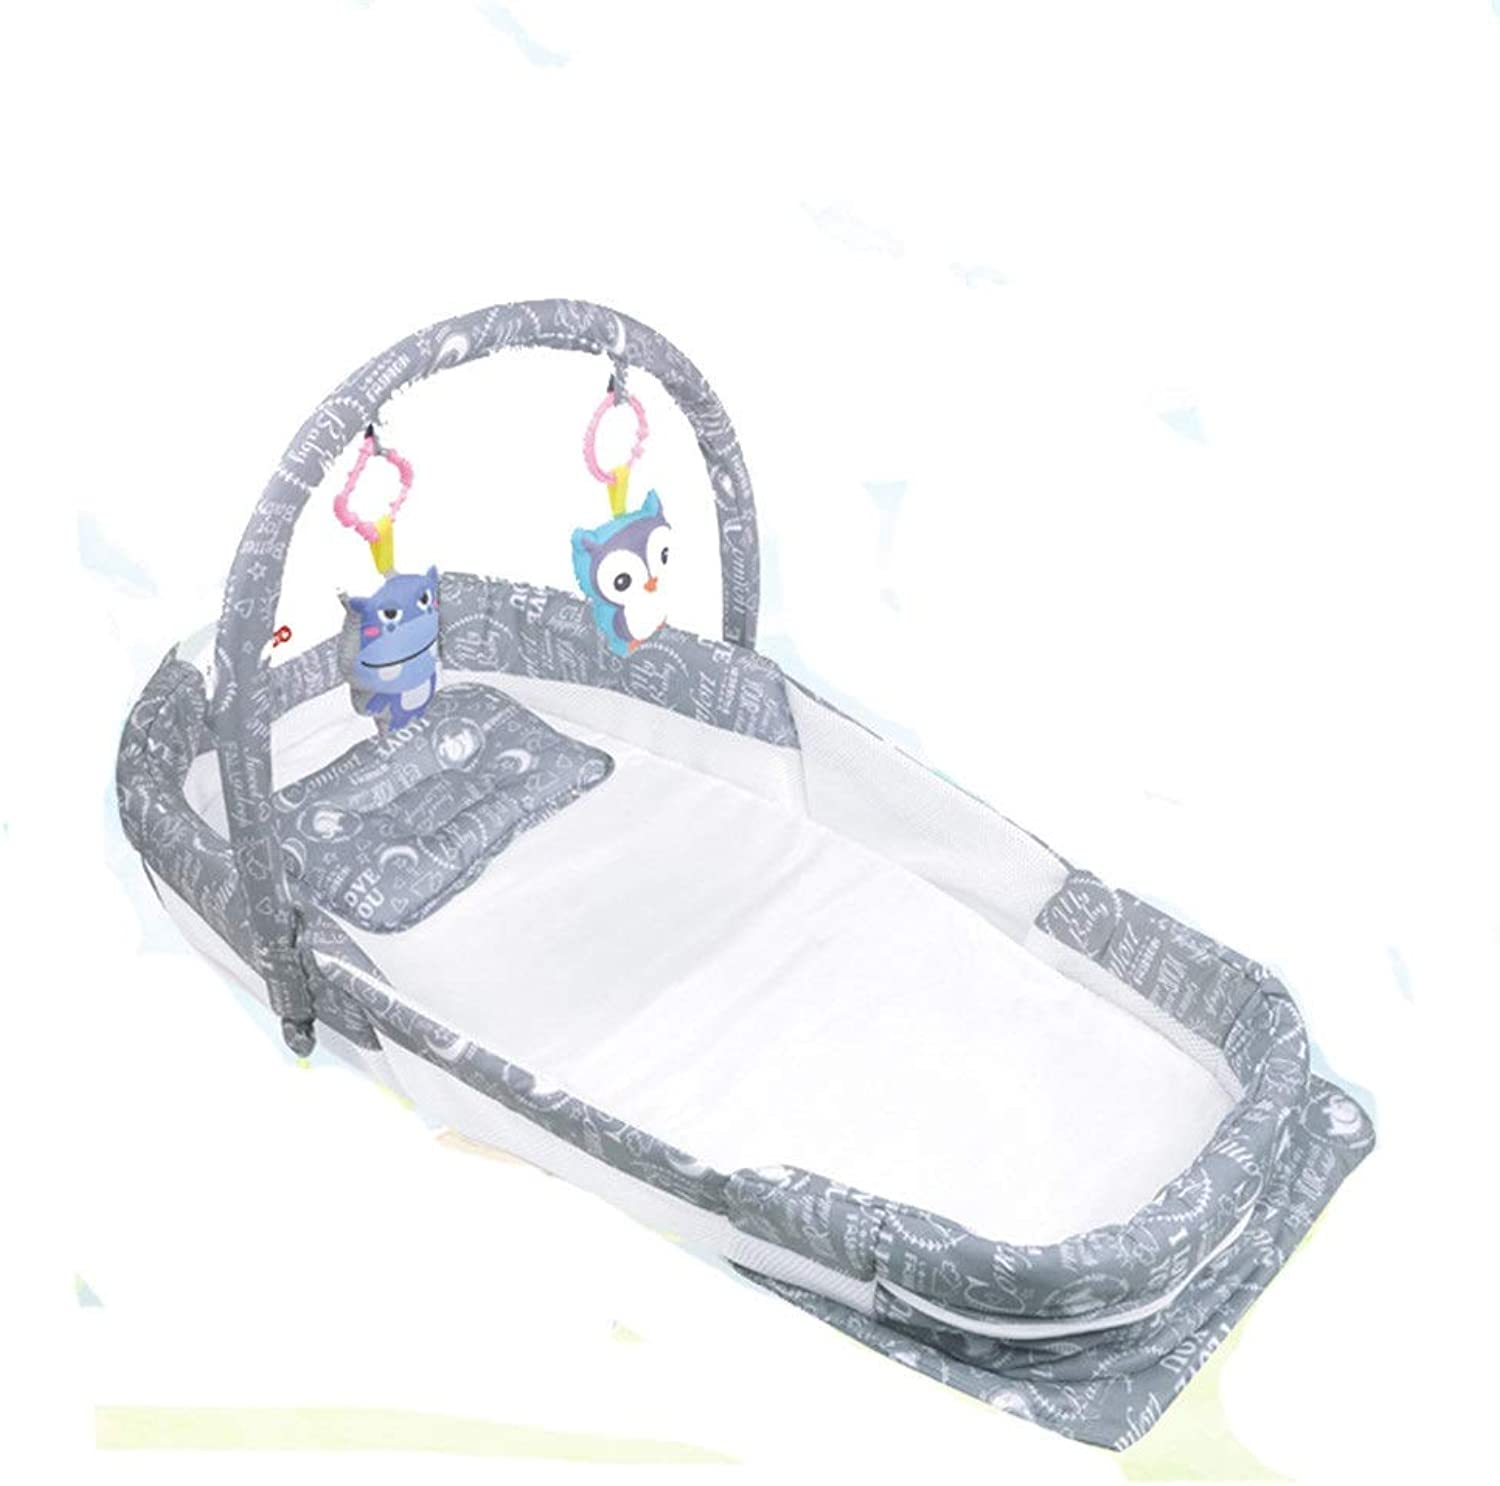 Baby Sleeps Well Good Foldable Co-Sleeping Baby Seperated Bed With Pillow Mattress Sheet Hanging Toys Nest Bassinet For Bed Portable Cotton Crib For Bedroom Travel Seperated Bed With Music Night Light